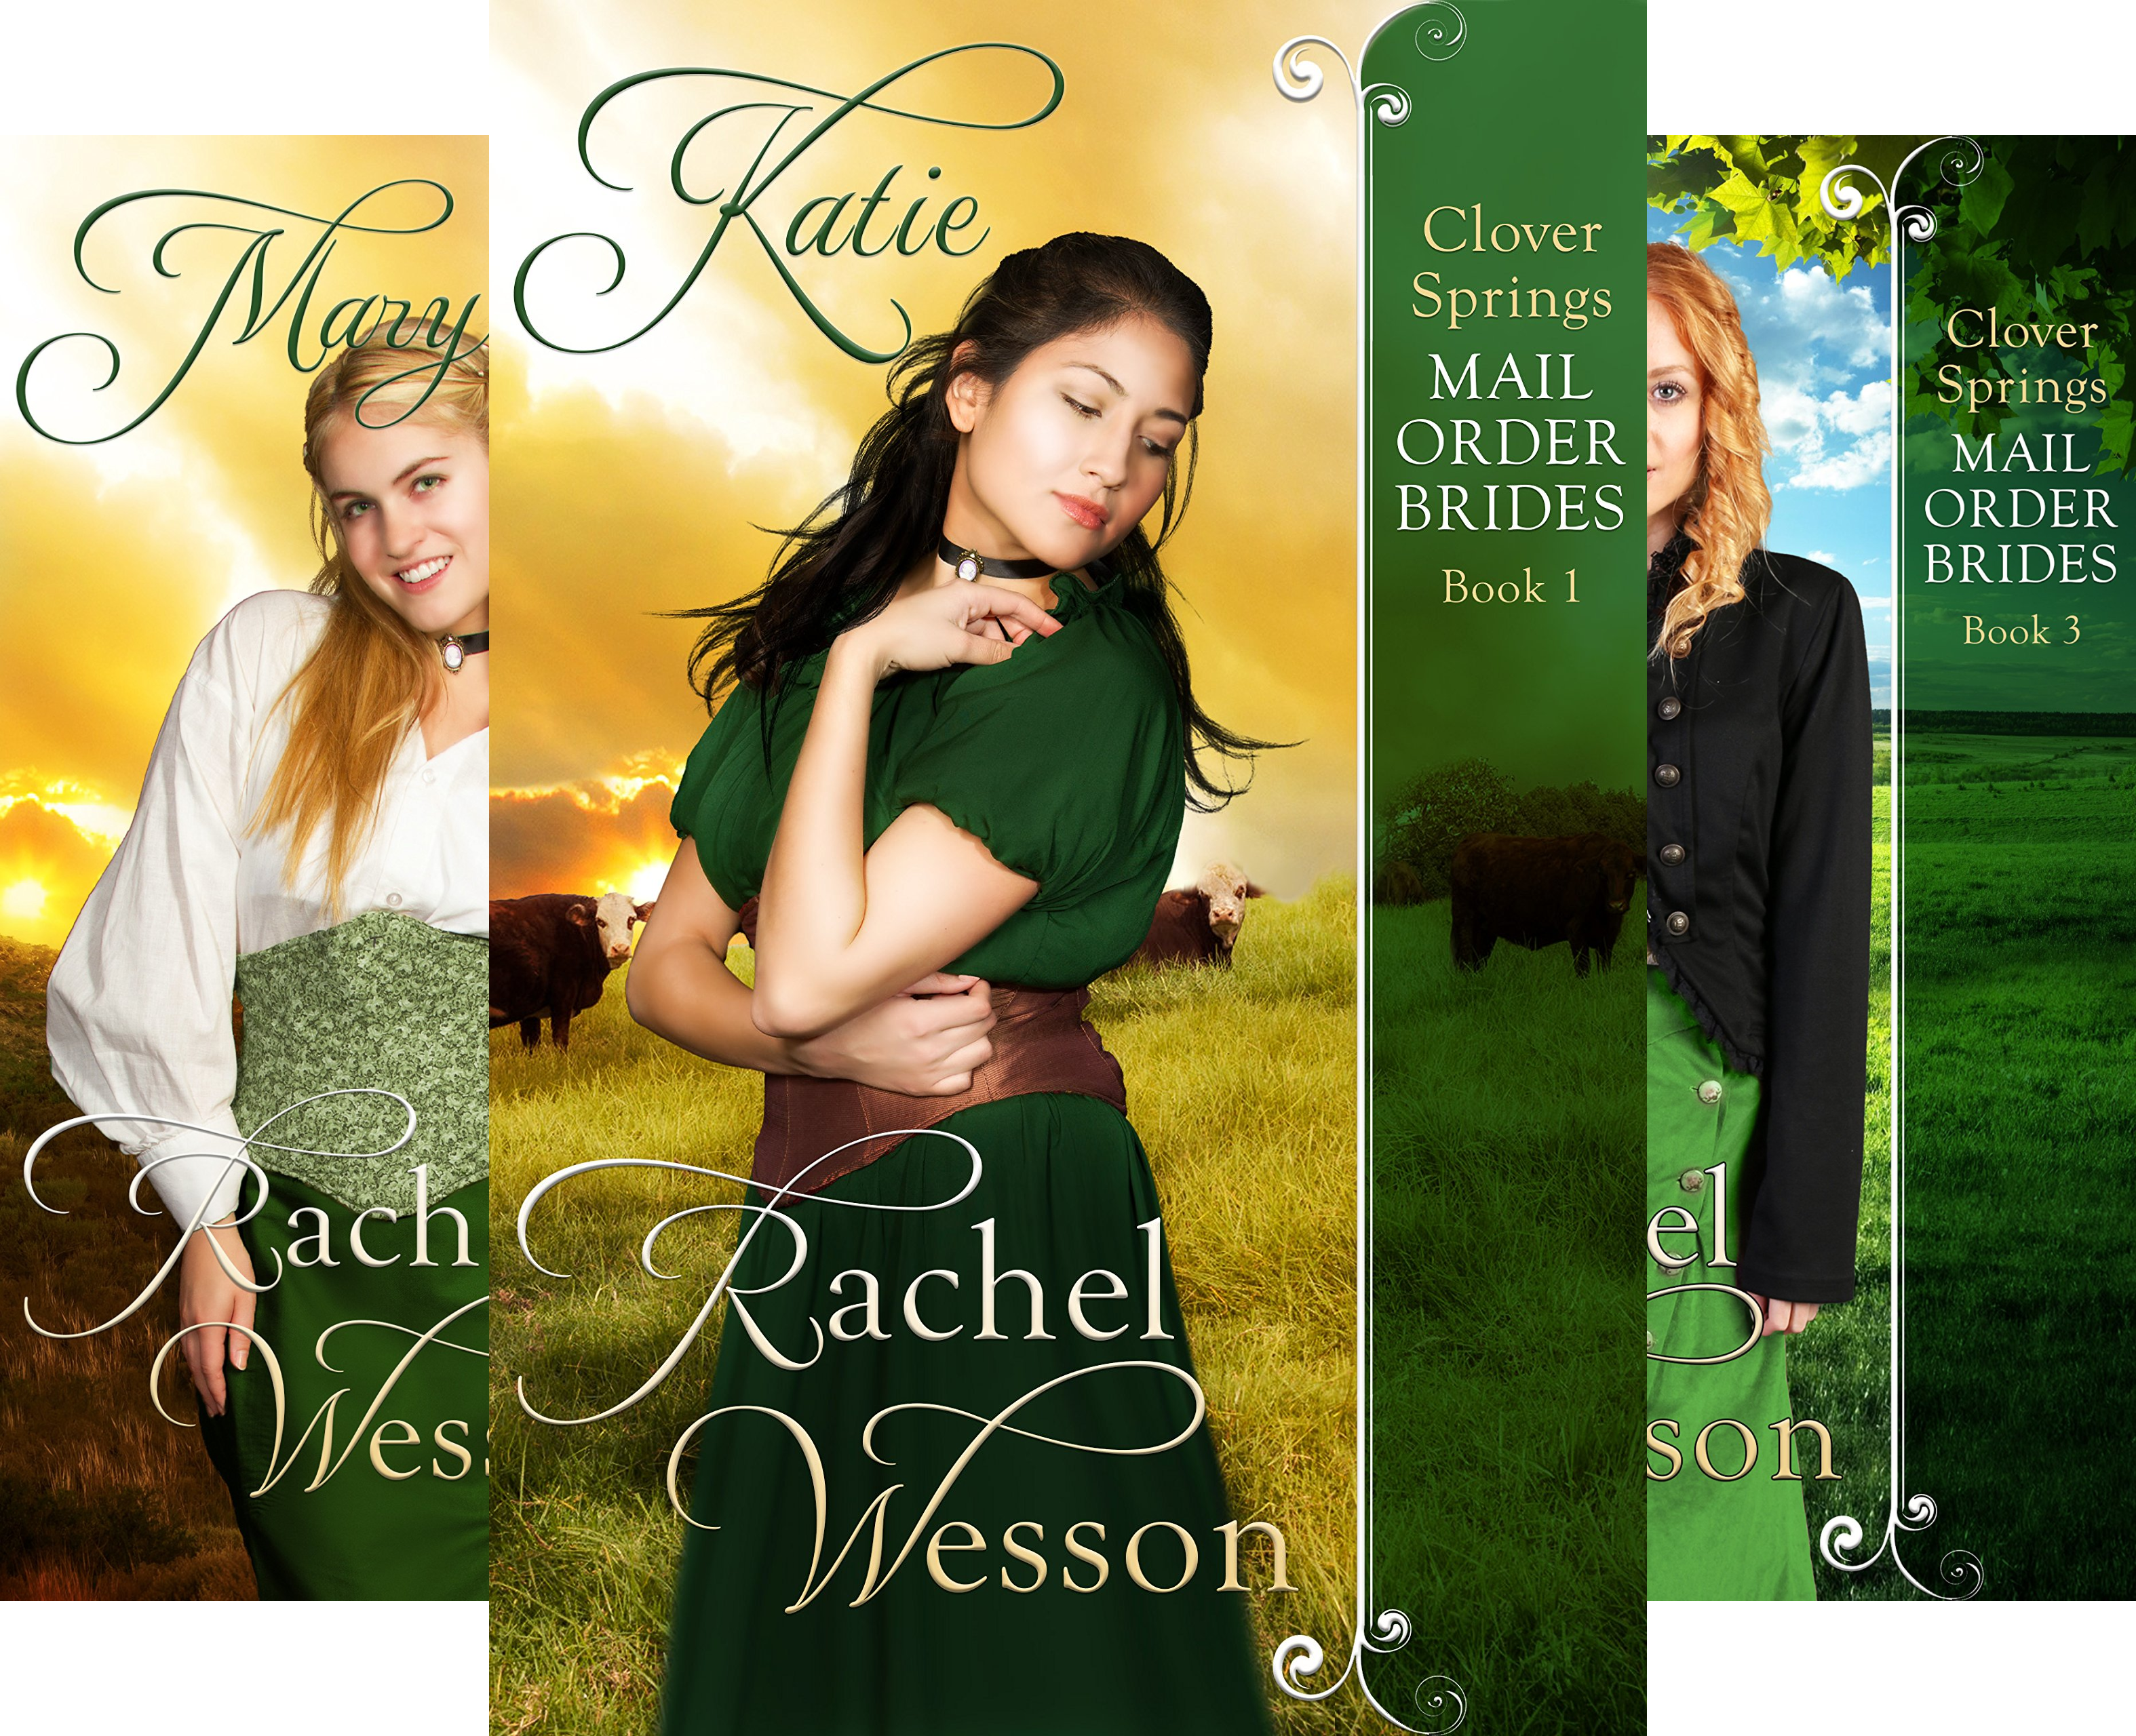 clover-springs-mail-order-brides-9-book-series